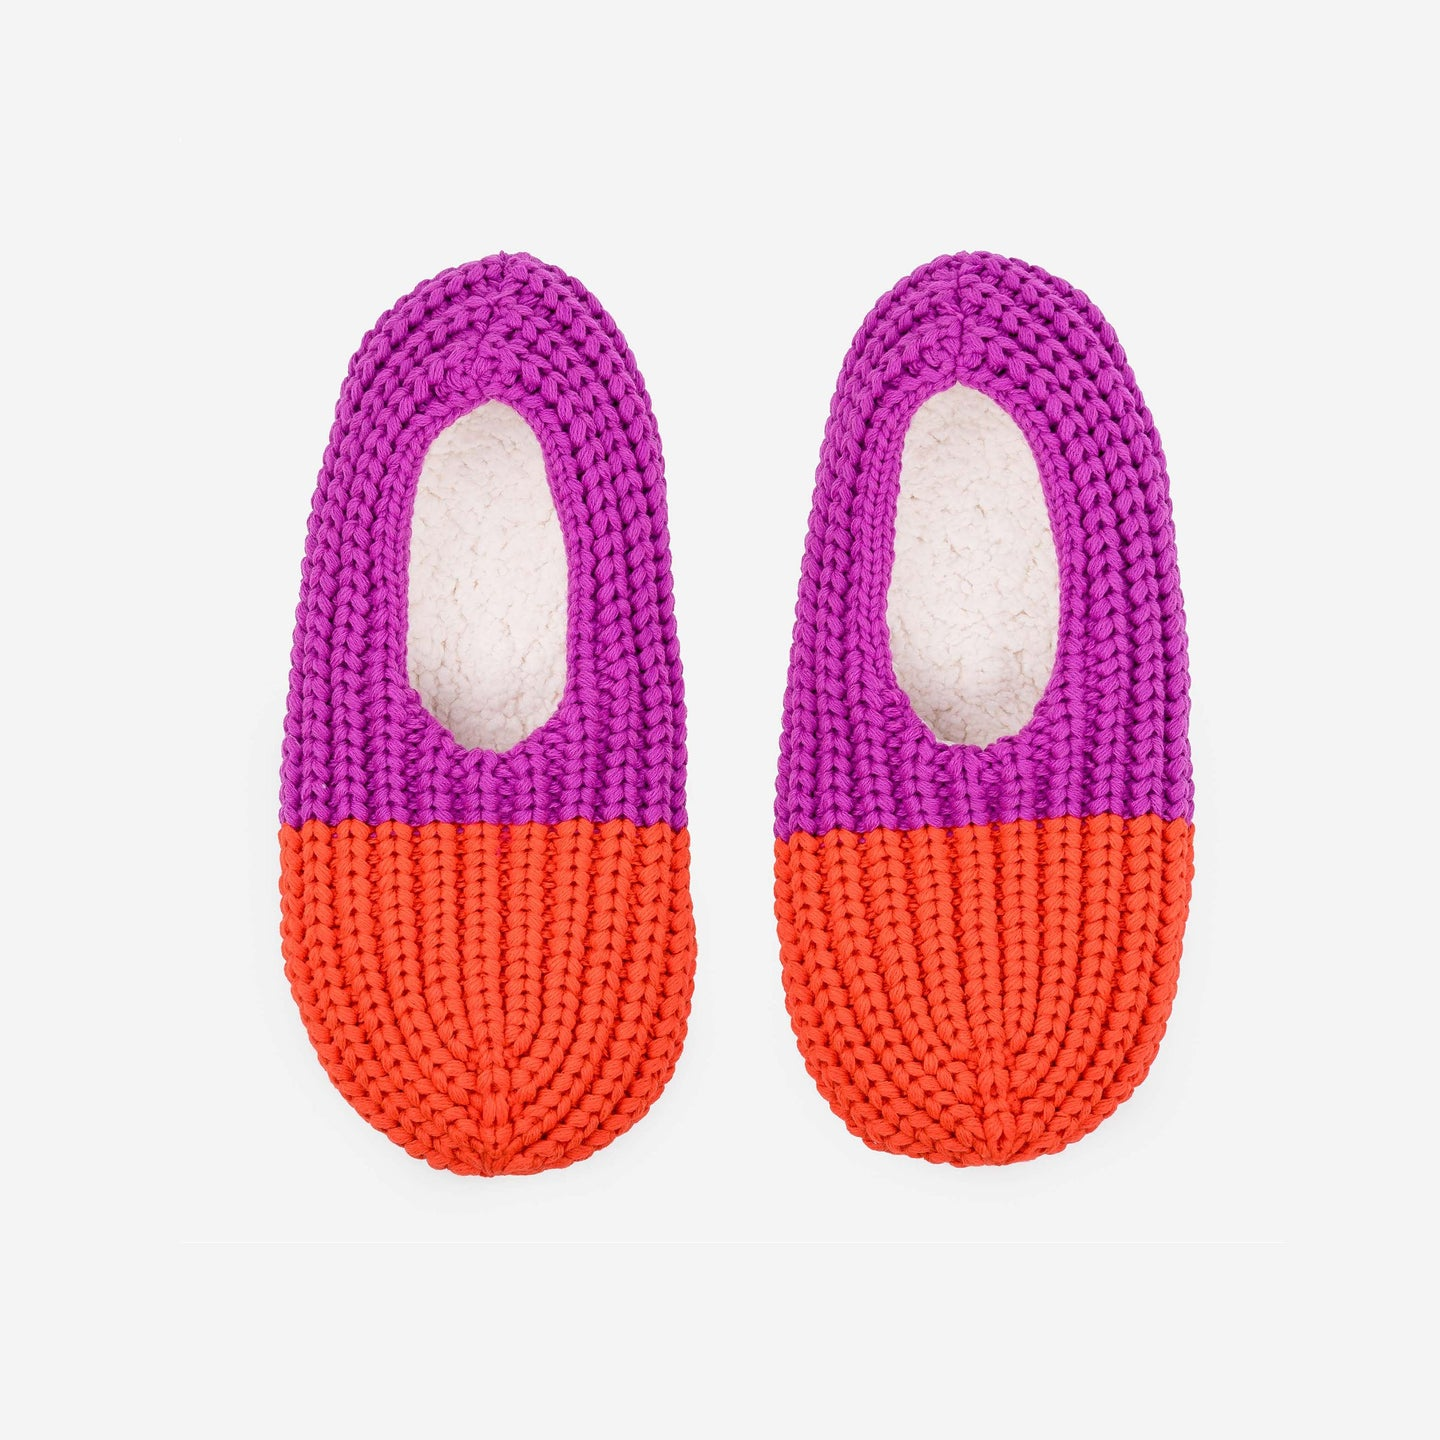 Colorblock Rib Knit Slippers Loungers